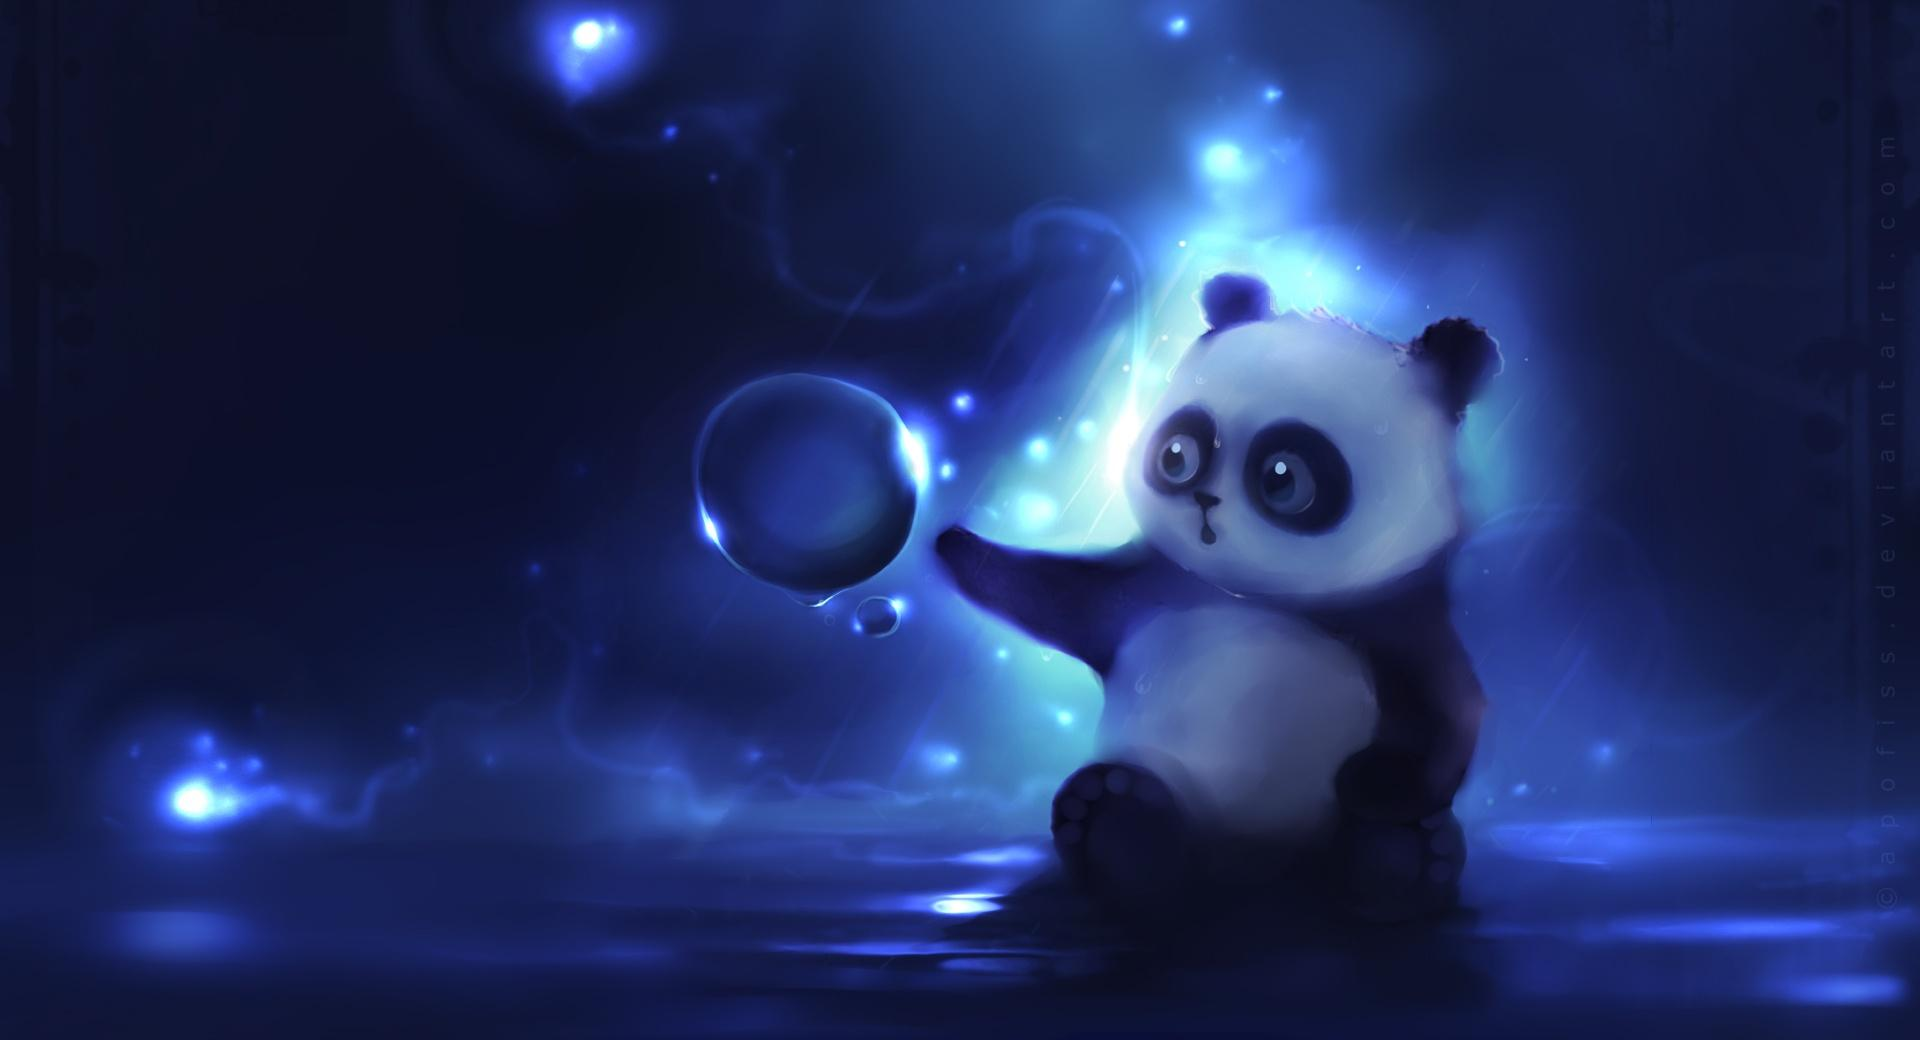 Curious Panda Painting wallpapers HD quality